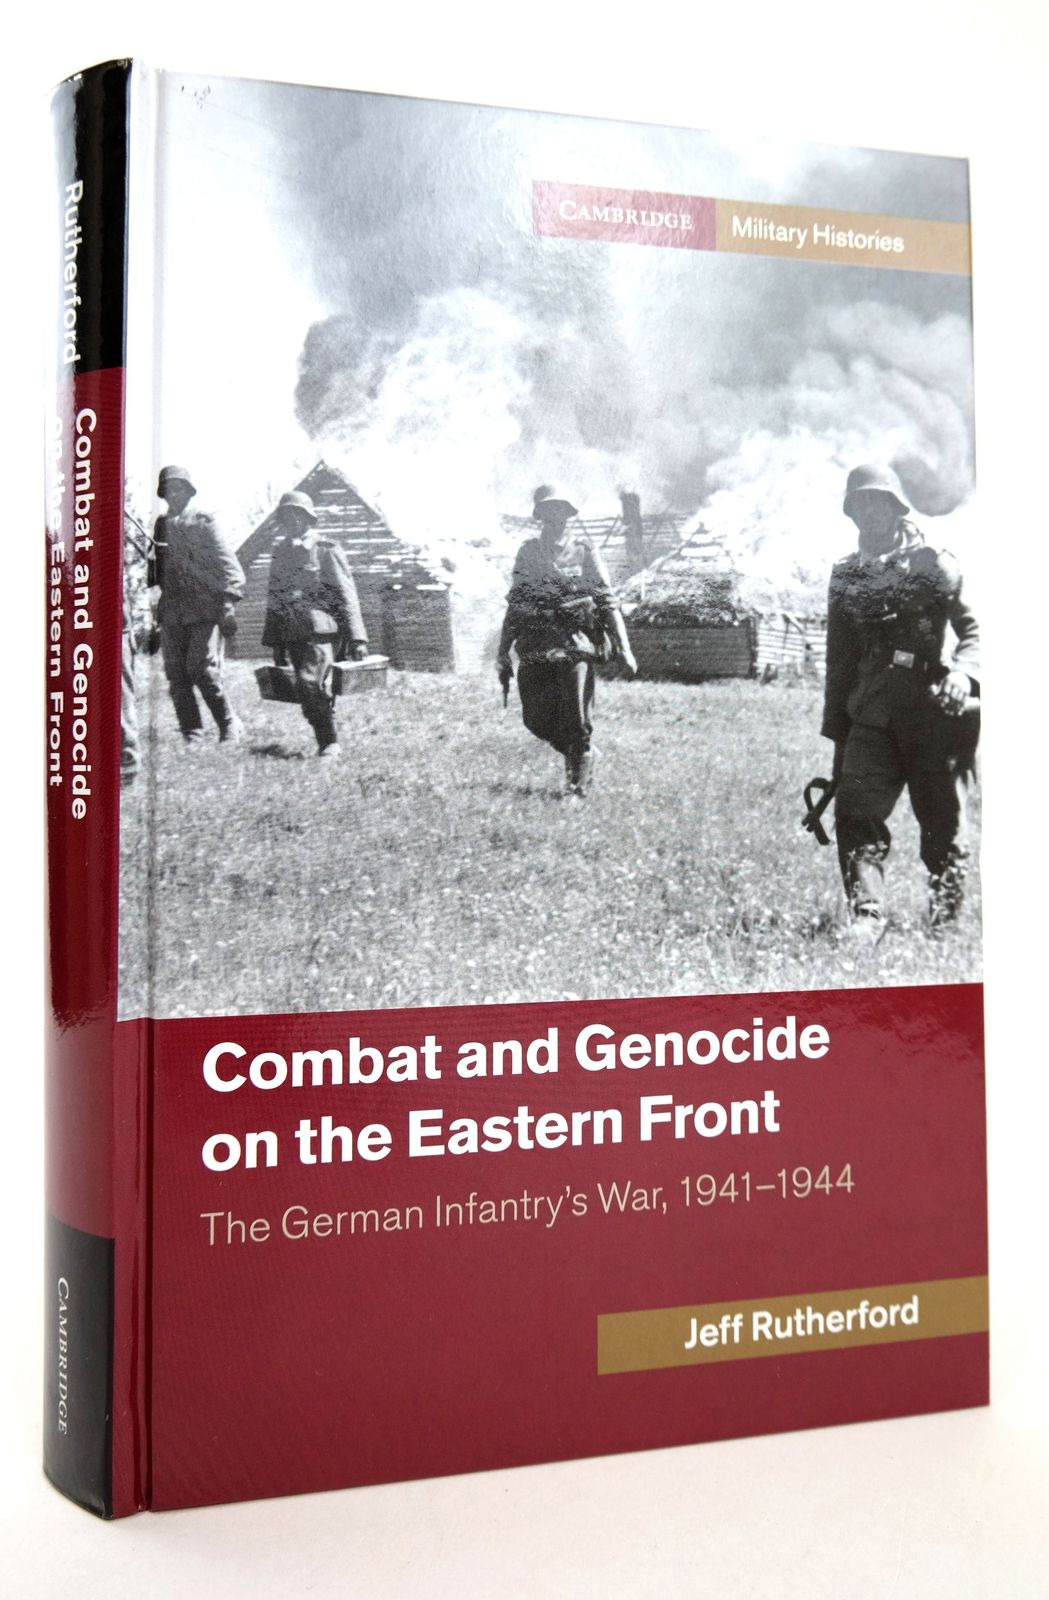 Photo of COMBAT AND GENOCIDE ON THE EASTERN FRONT: THE GERMAN INFANTRY'S WAR, 1941-1944 written by Rutherford, Jeff published by Cambridge University Press (STOCK CODE: 1818902)  for sale by Stella & Rose's Books